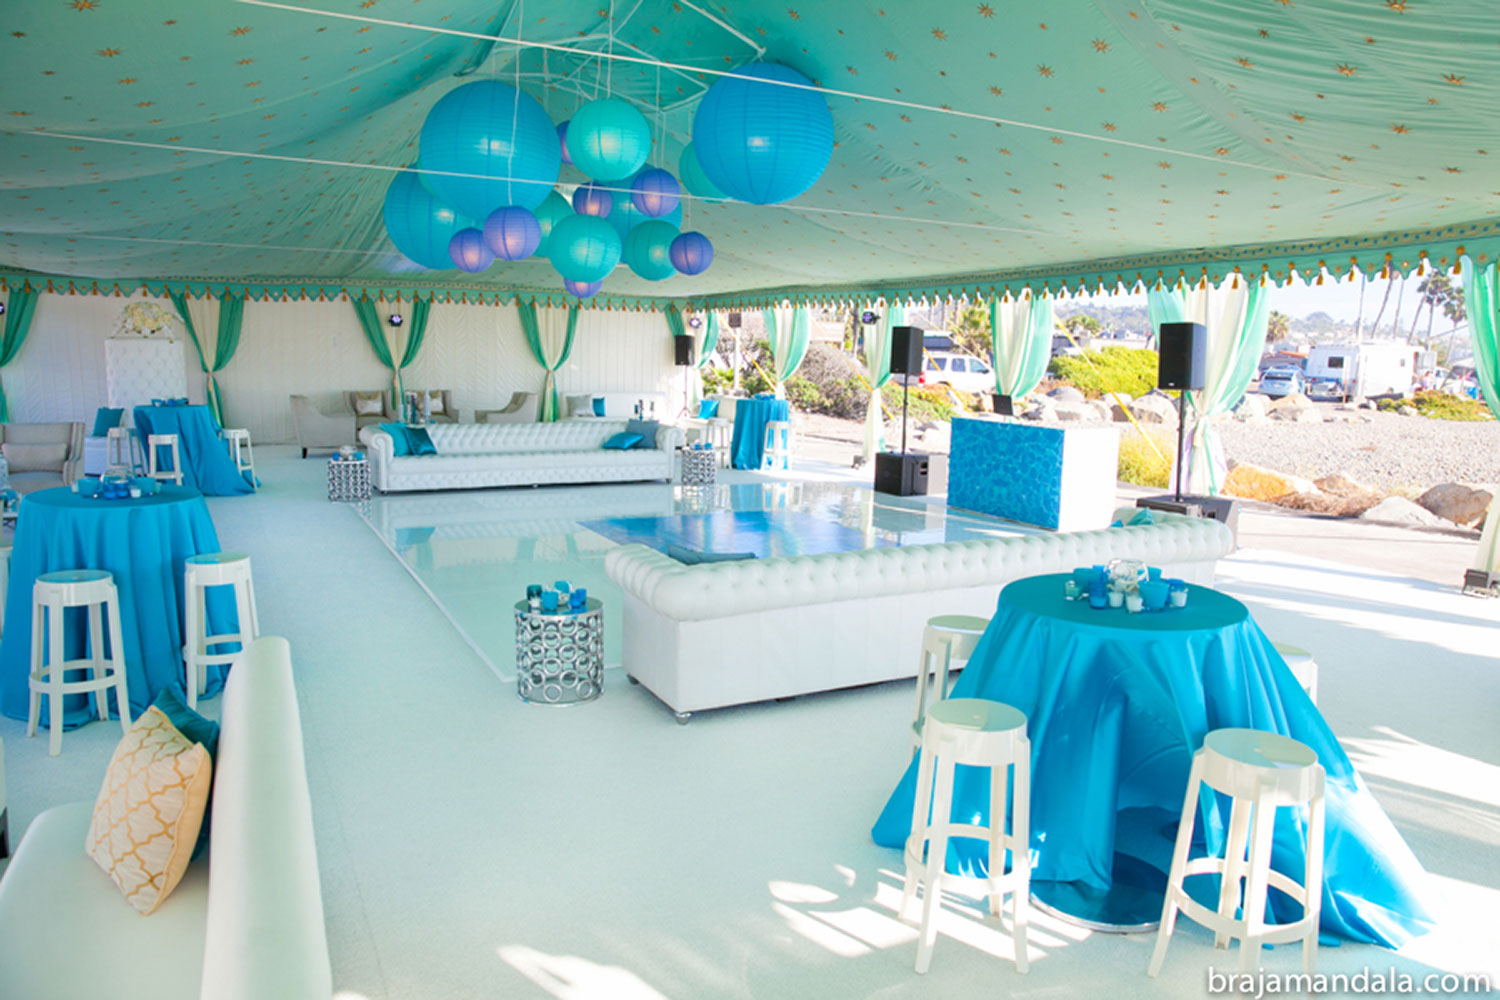 raj-tents-beach-chic-theme-interior-frame-tent.jpg